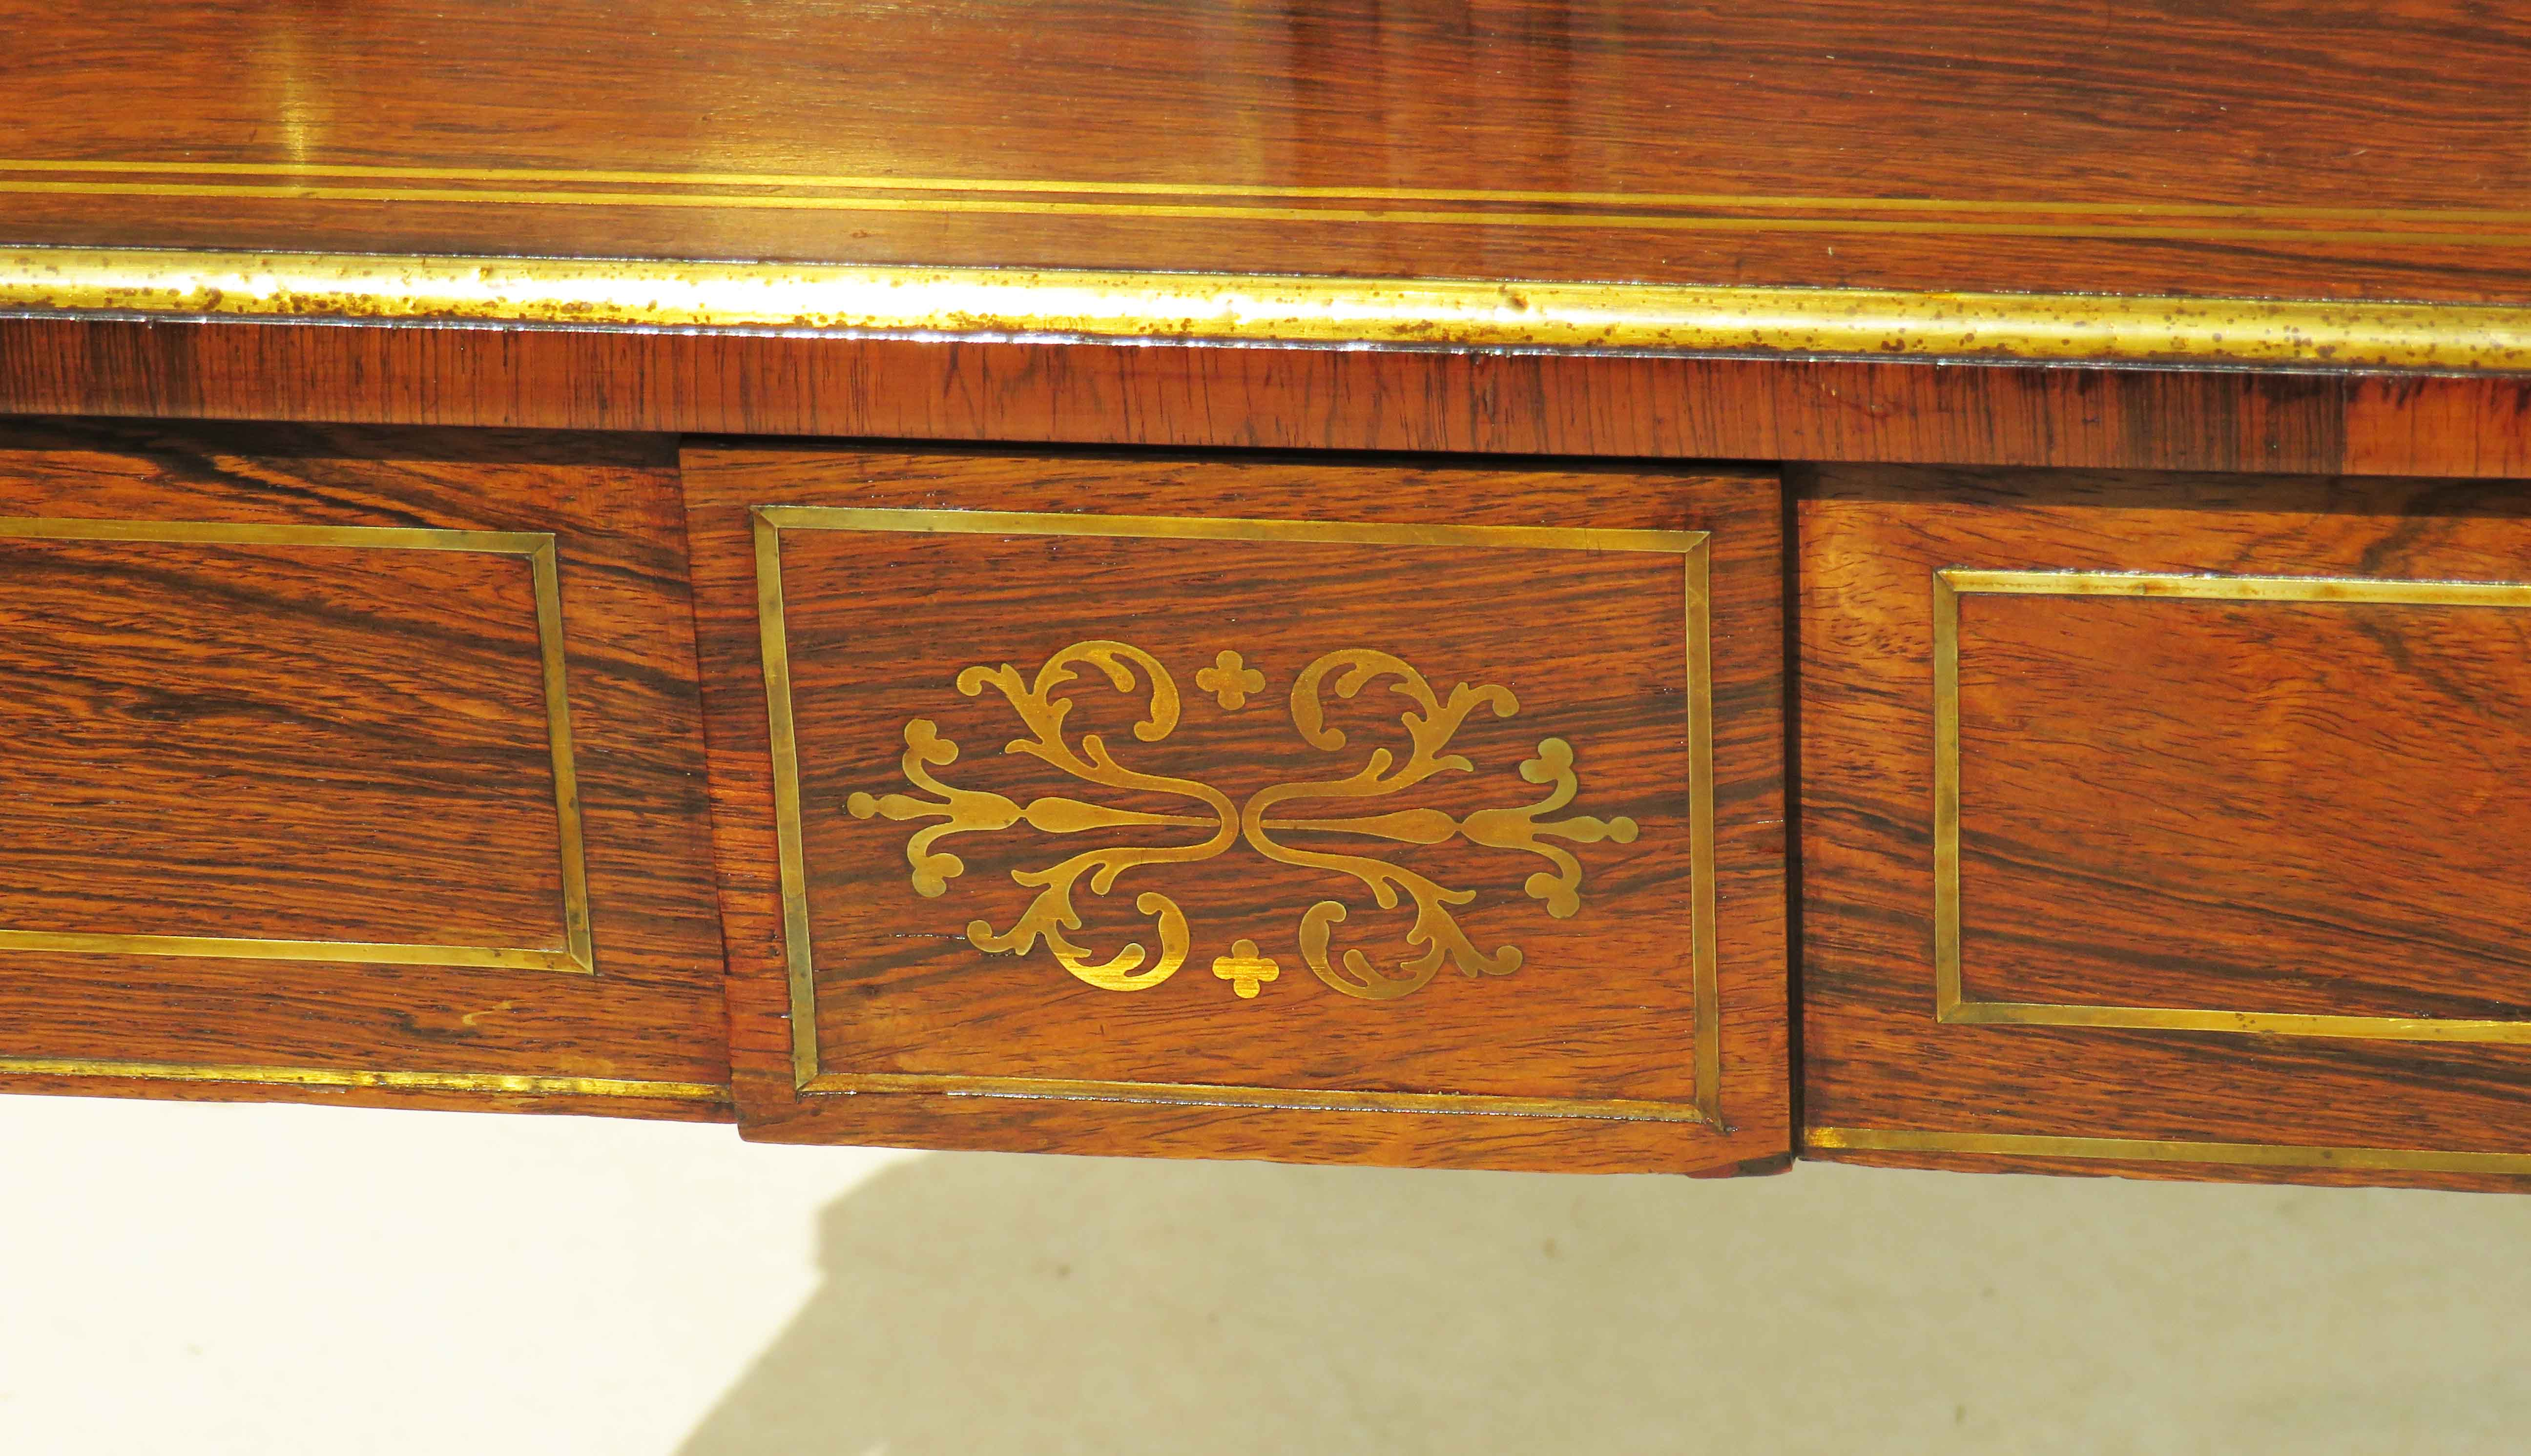 Superb quality Regency period early 19th Century rosewood bonheur du jour - Image 4 of 7